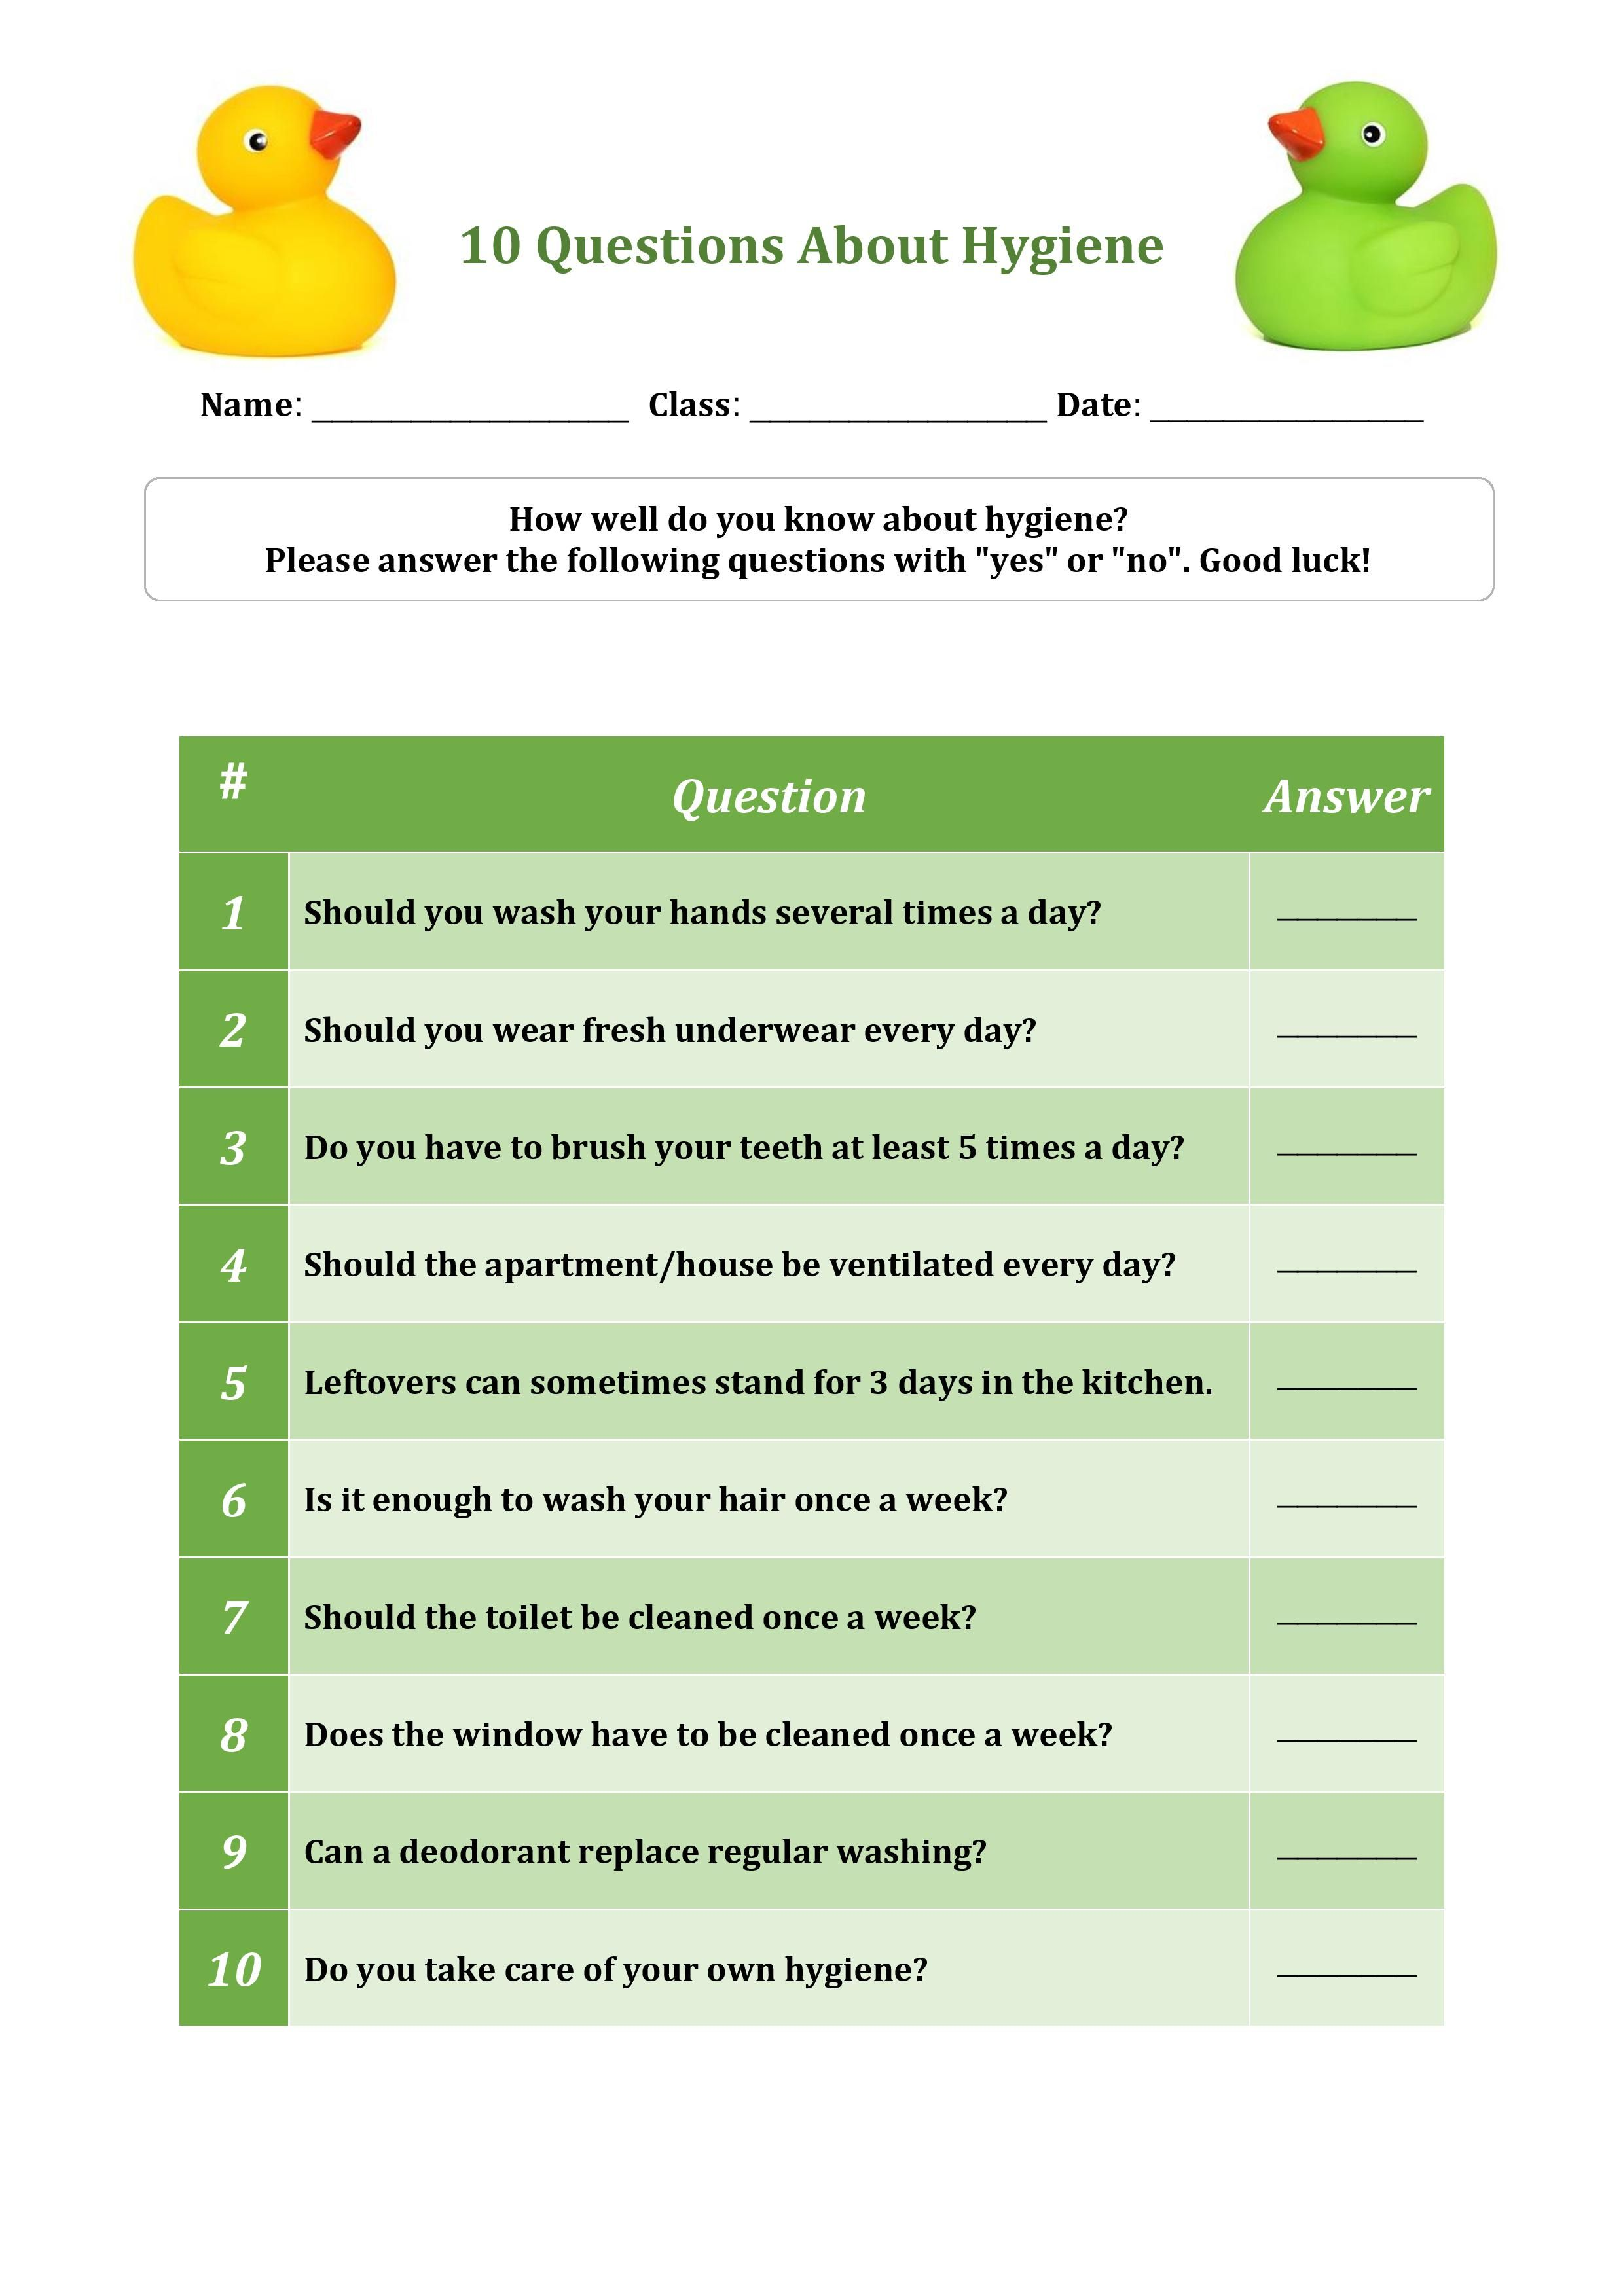 10 Questions About Hygiene Worksheet For Primary School Students Personal Hygiene Worksheets Educational Worksheets Hygiene Lessons [ 3508 x 2479 Pixel ]